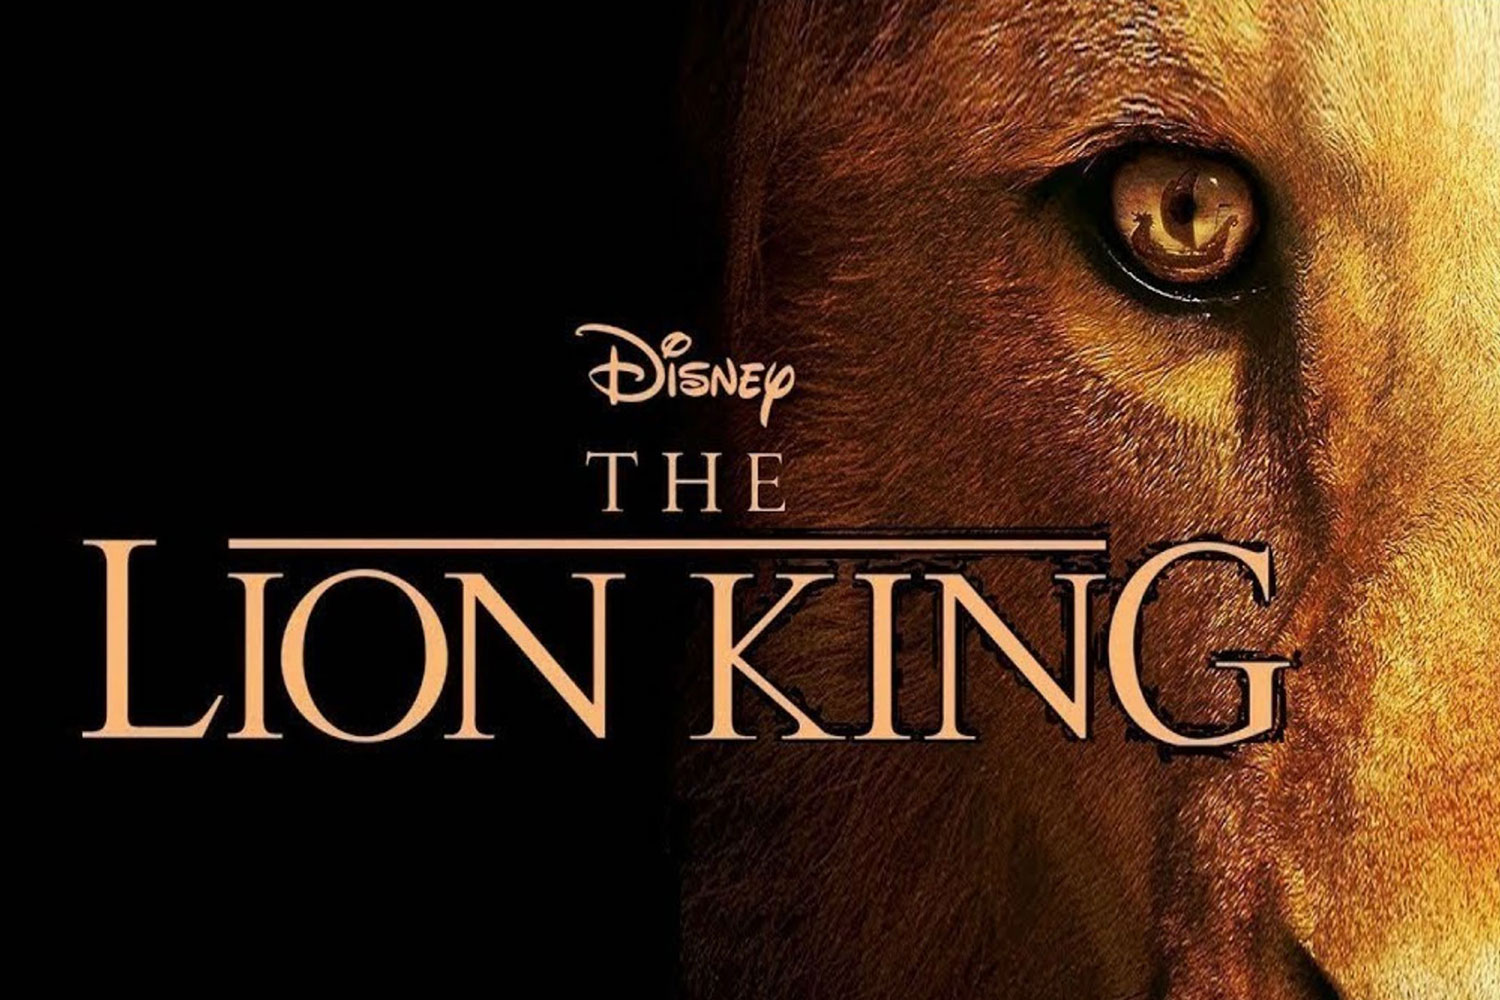 Lion King movie 2019